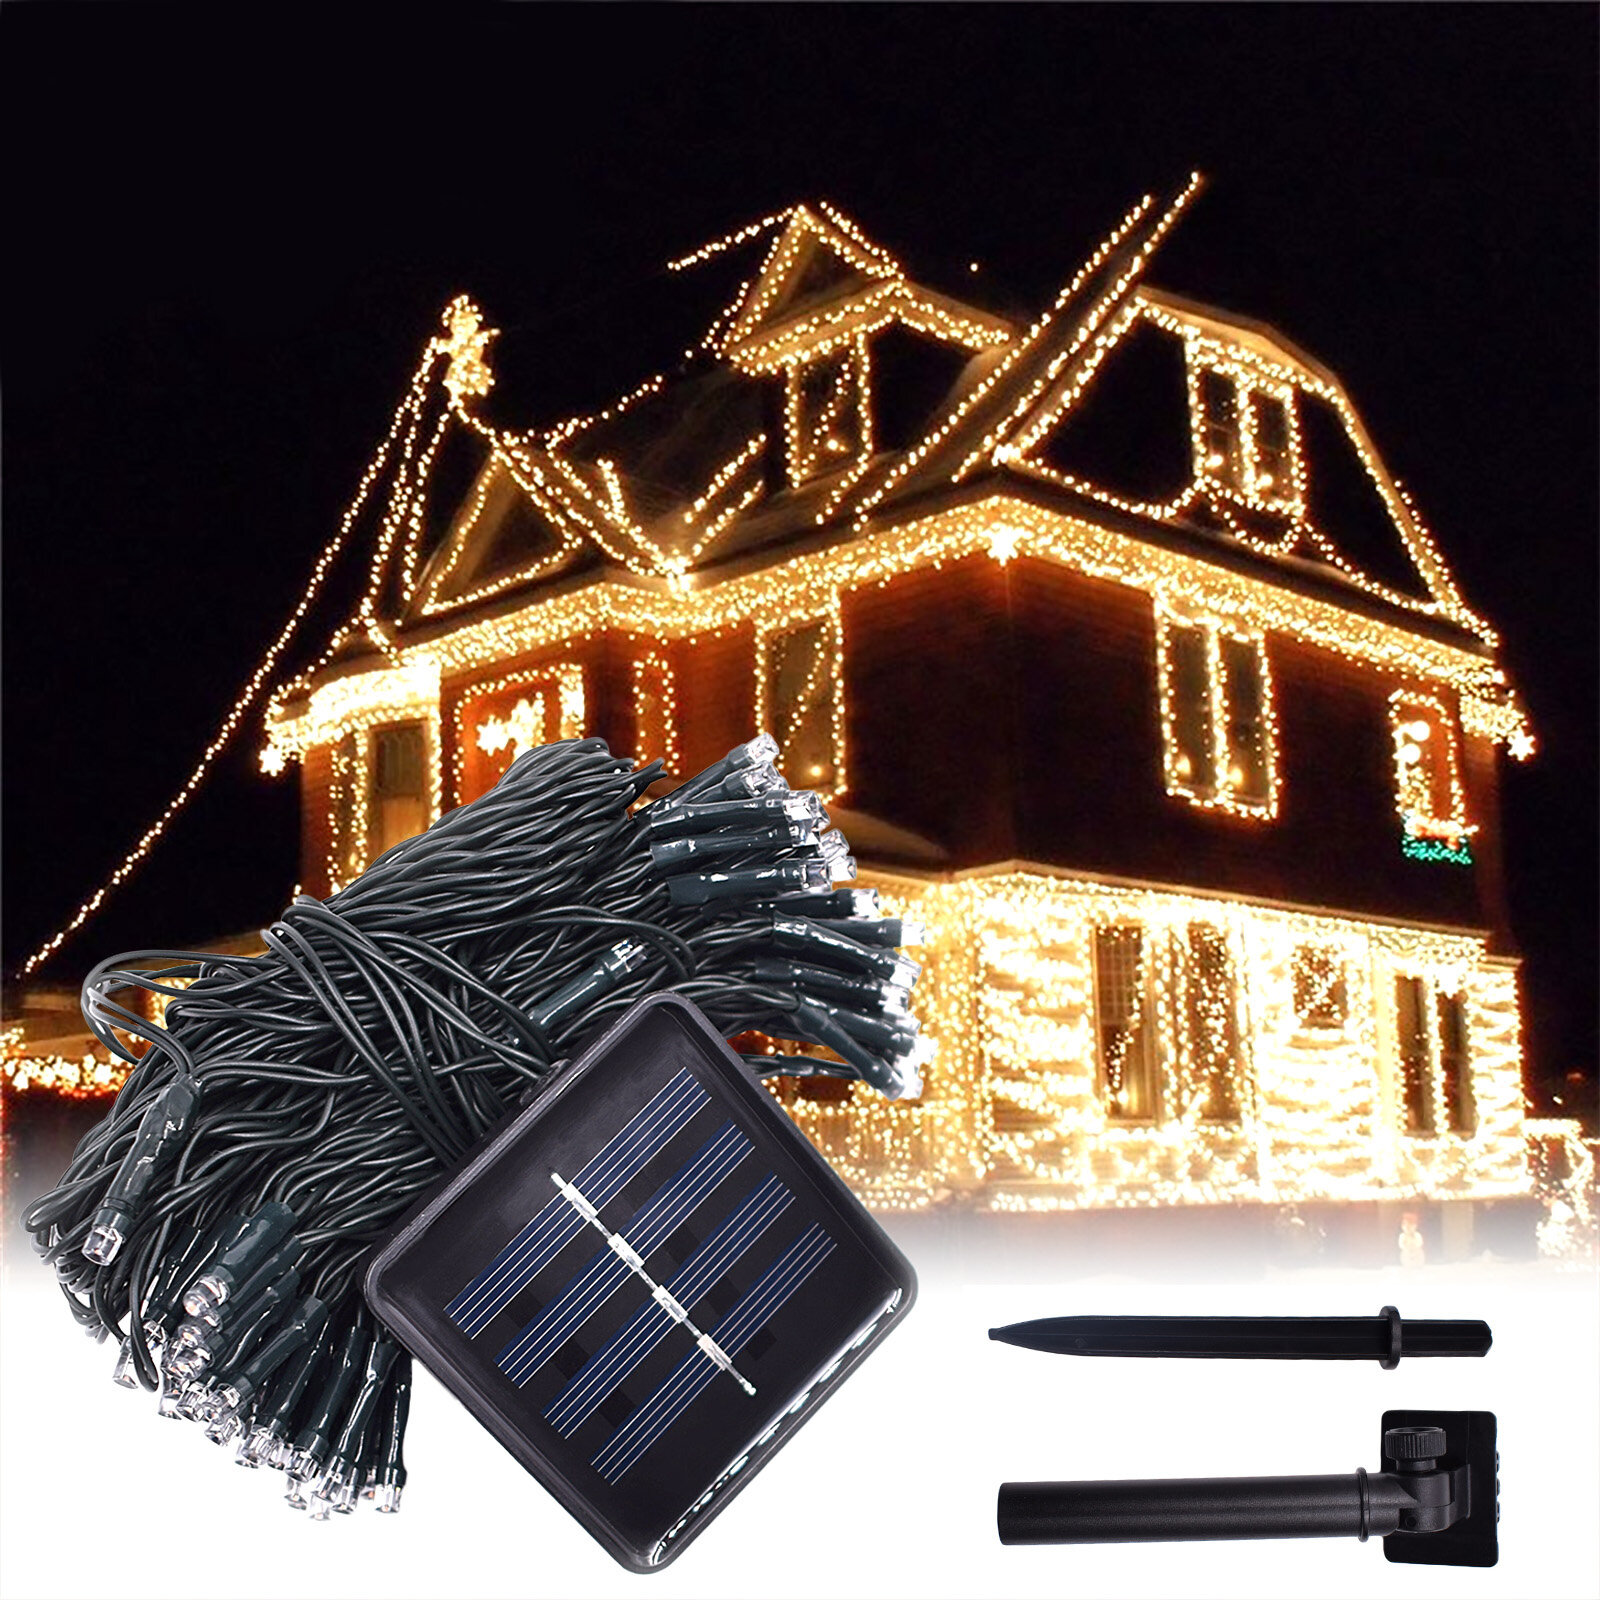 12M 100LED Solar Powered Fairy String Light Christmas Holiday Party Outdoor Garden Decor